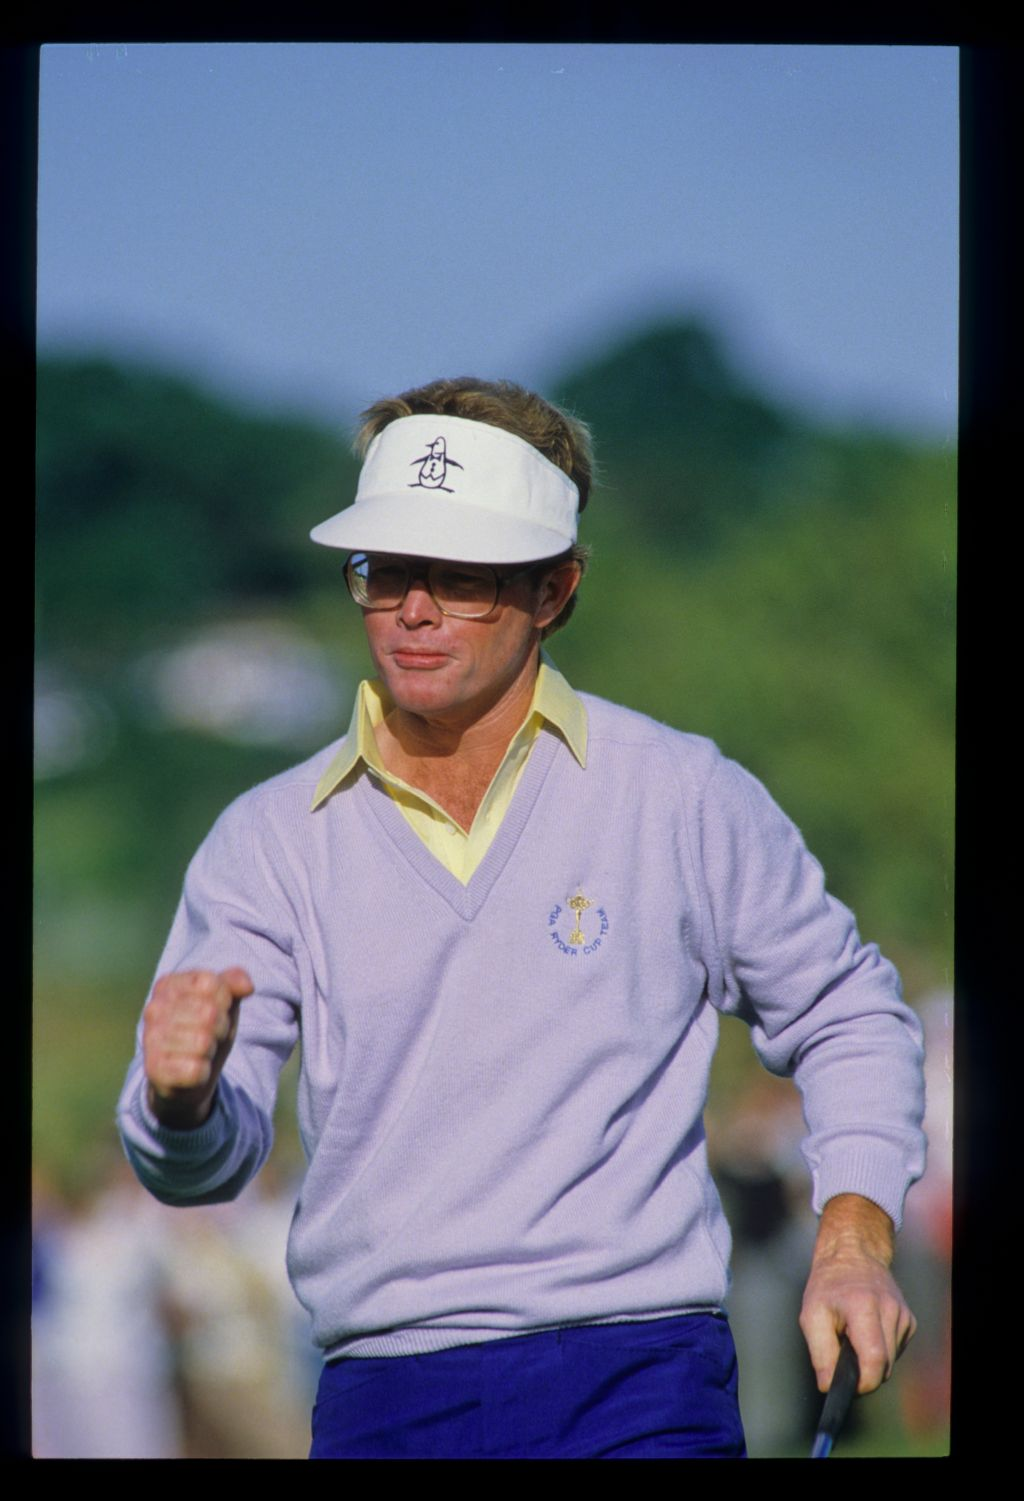 Tom Kite giving a celebratory fist pump at the 1985 Ryder Cup